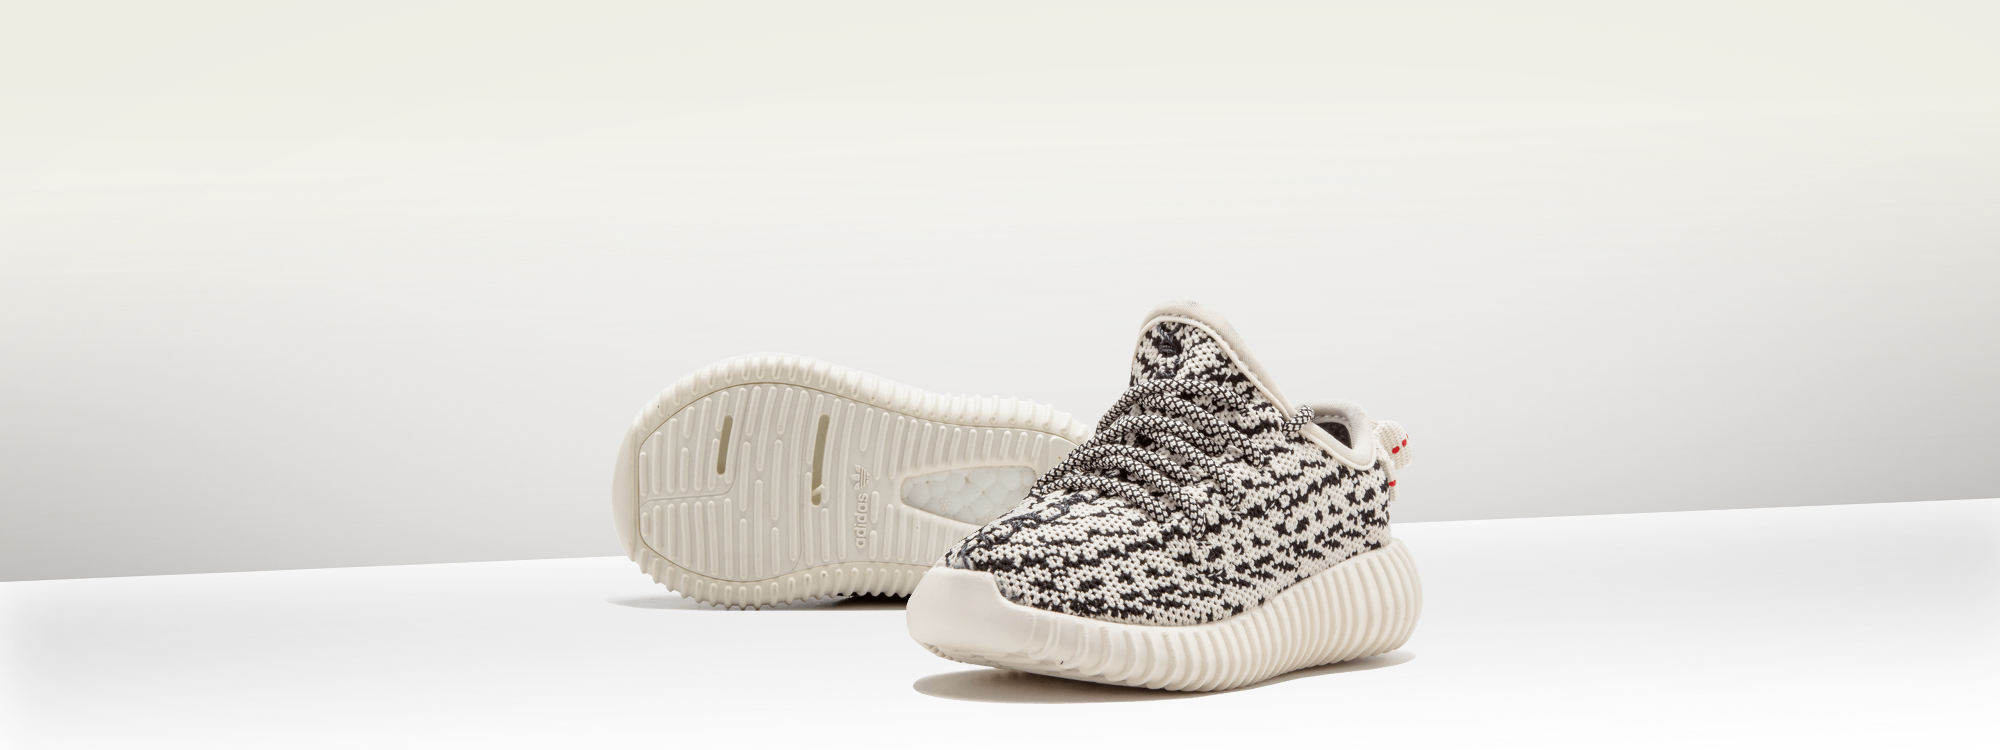 Price of Adidas Yeezy Boost 350 INFANT Turtle Dove sneakers